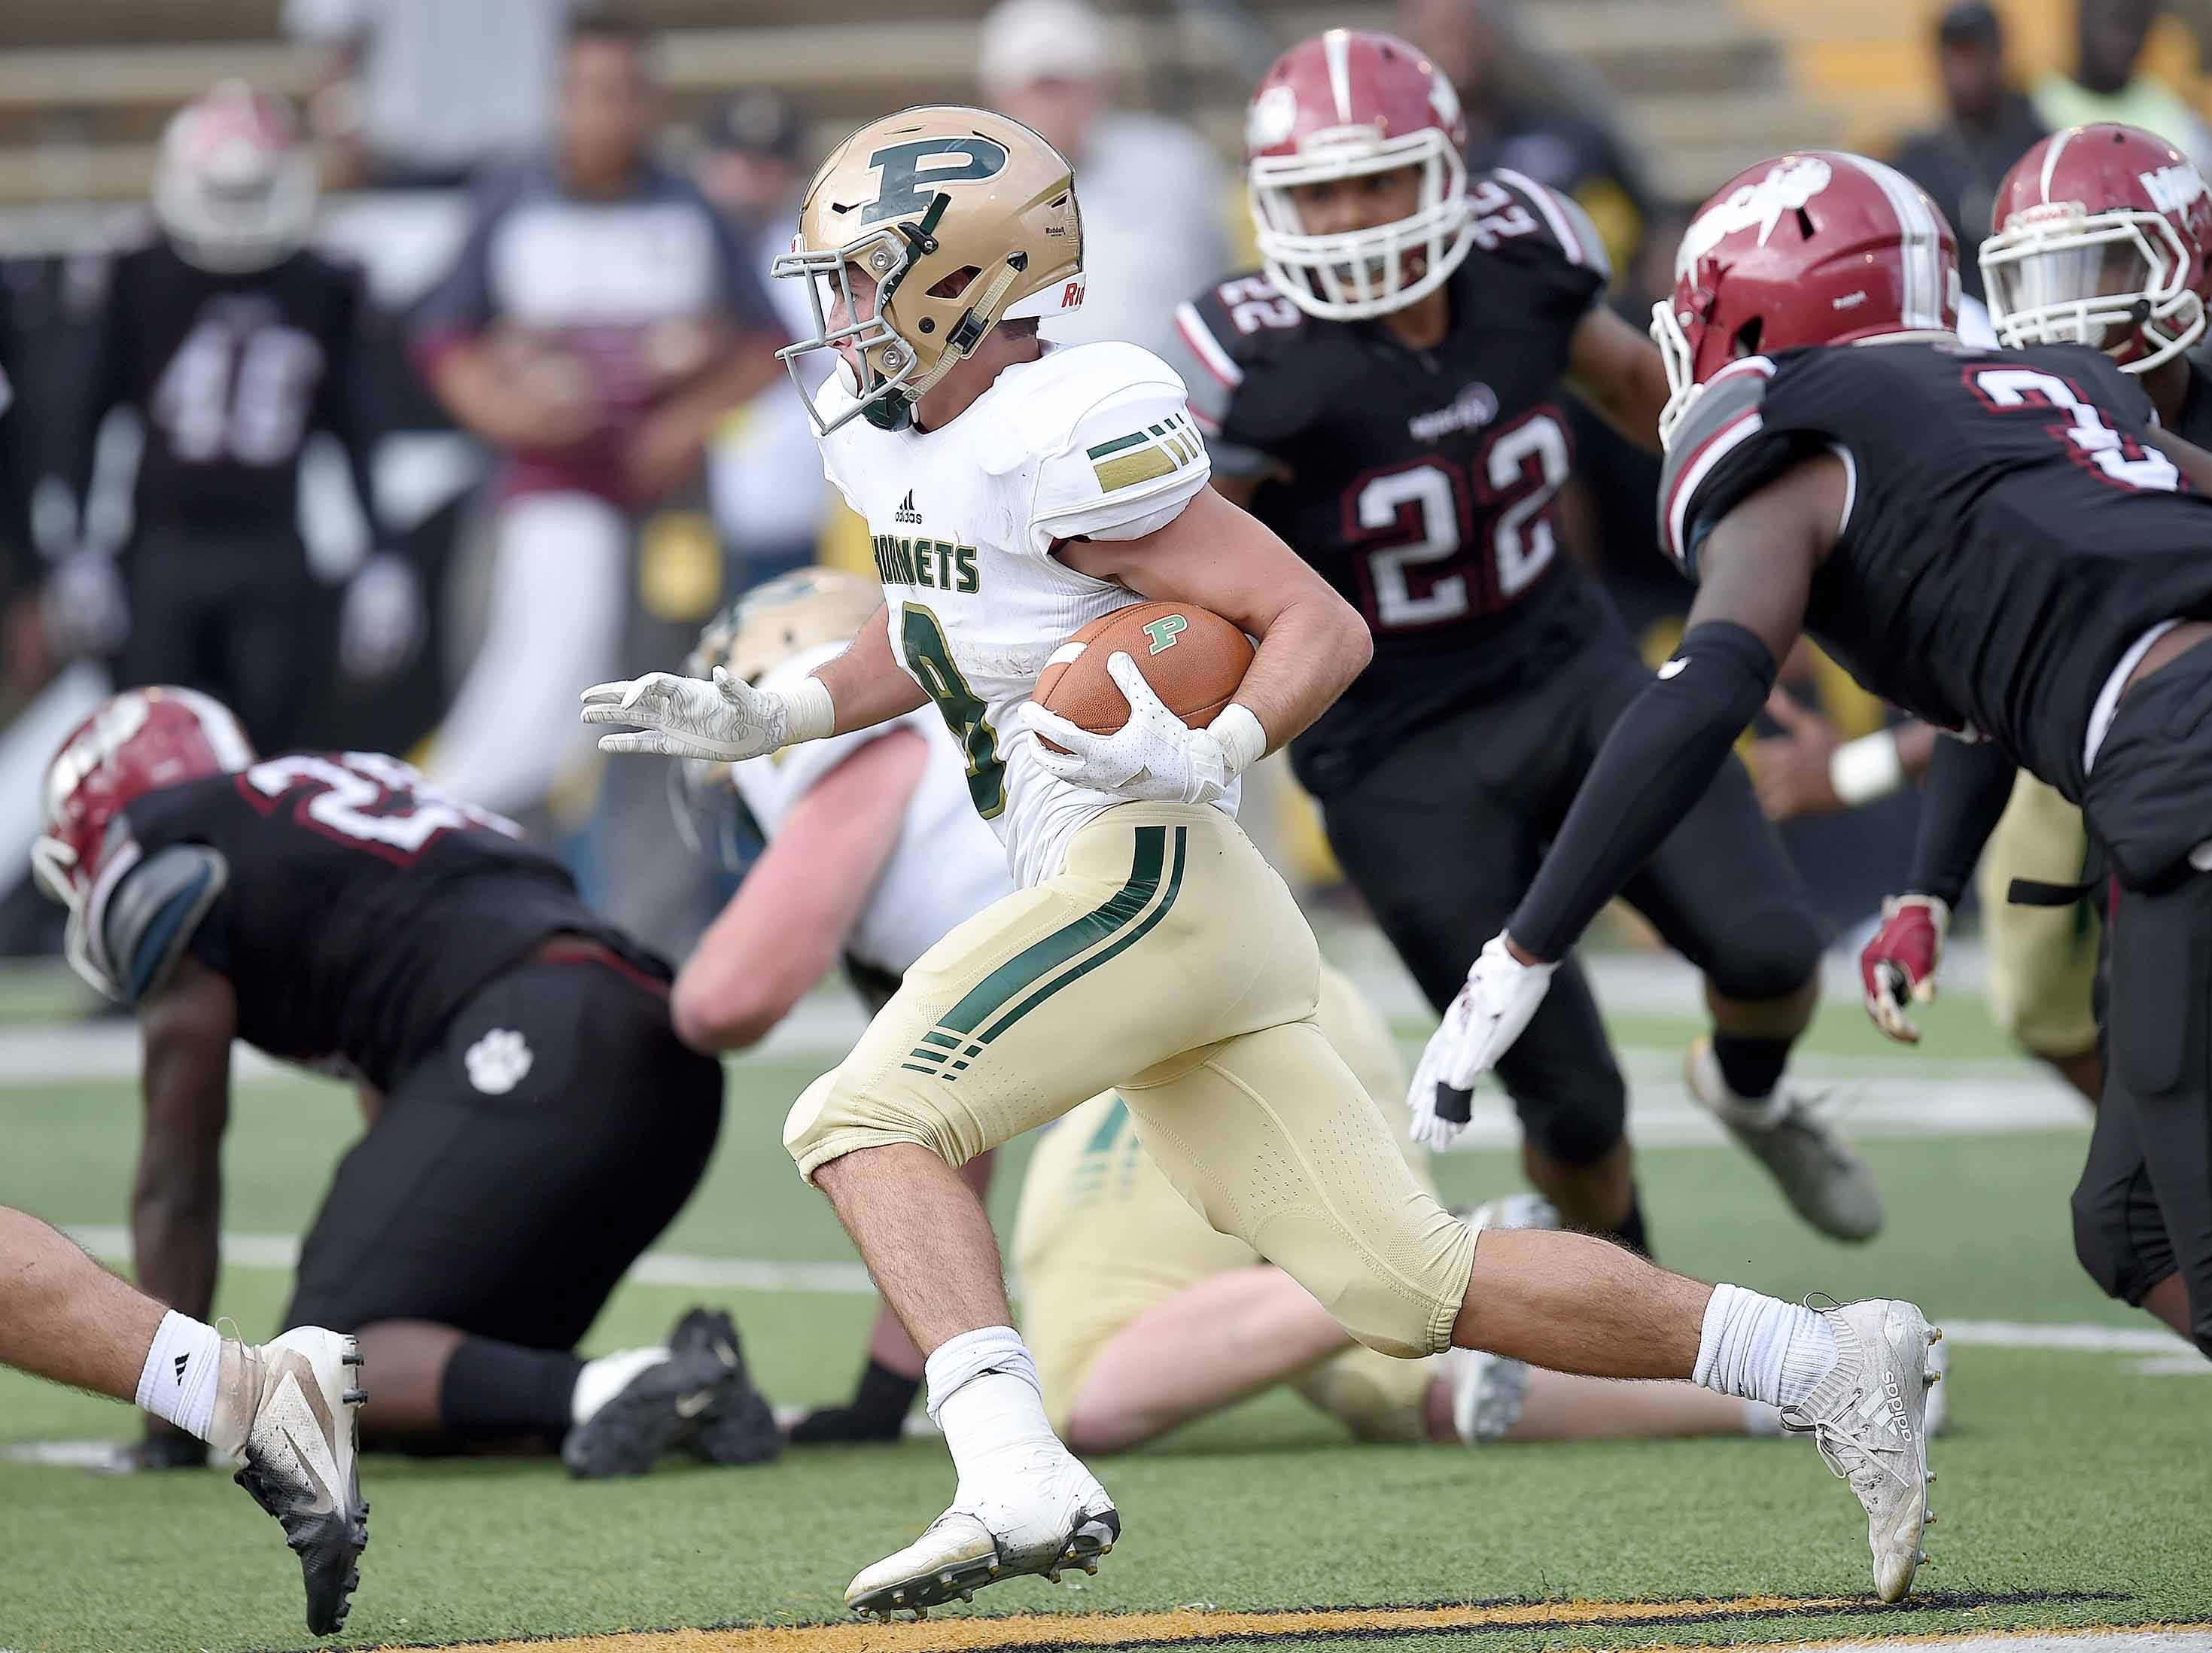 Poplarville's Tyson Holston (left) runs through the Louisville defense on Saturday, December 1, 2018, in the MHSAA BlueCross BlueShield Gridiron Classic High School Football Championships in M.M. Roberts Stadium on the University of Southern Mississippi campus in Hattiesburg, Miss.